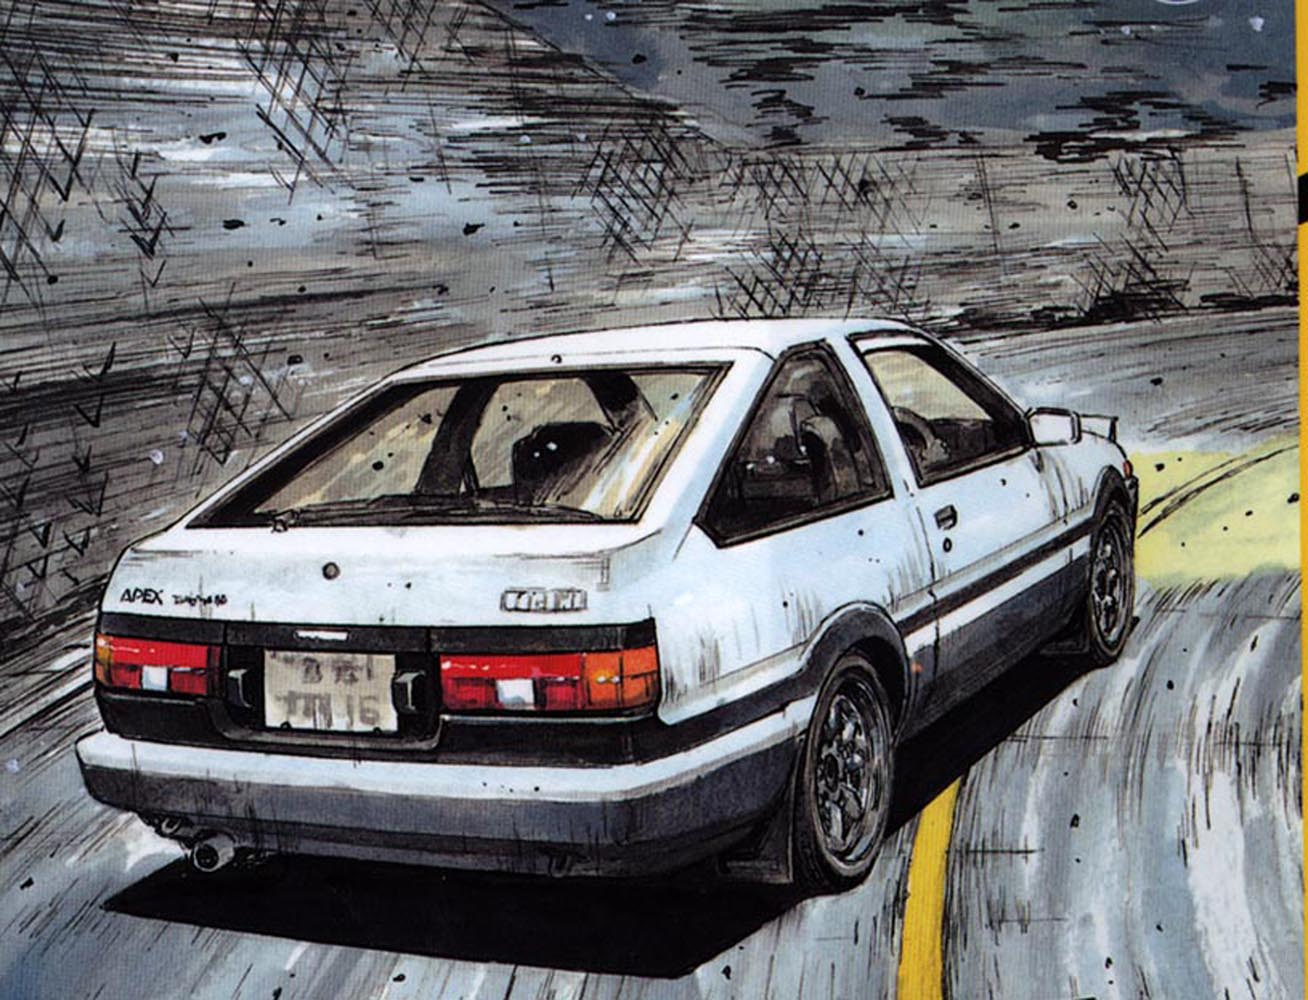 Wallpapers initial d wallpaper cave - Ae86 initial d wallpaper ...